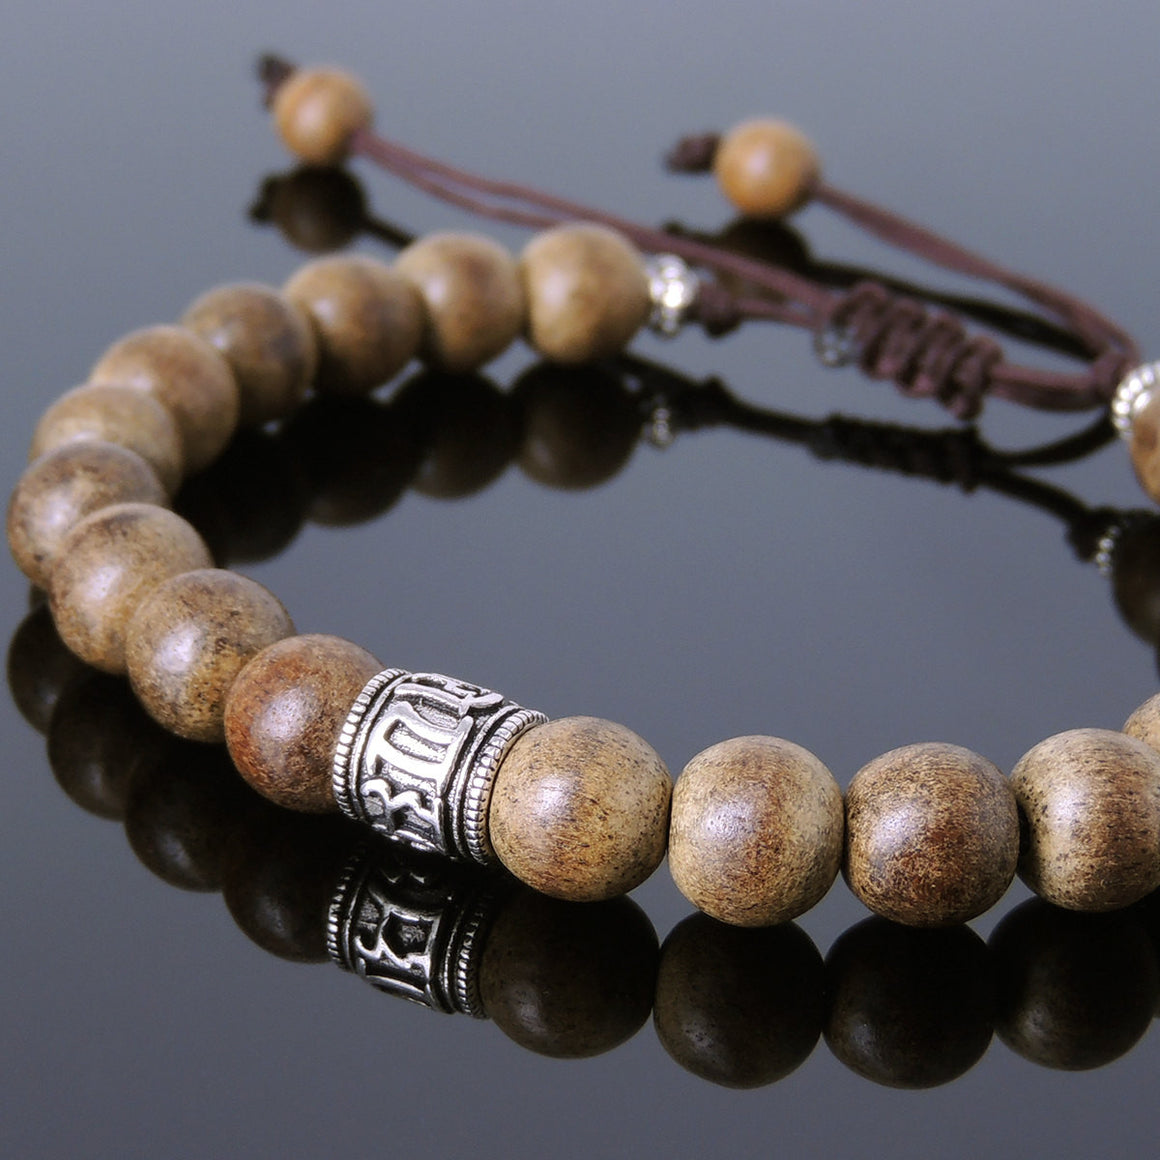 Agarwood Mala Adjustable Bracelet with S925 Sterling Silver OM Buddhism Bead & Spacers - Handmade by Gem & Silver BR646